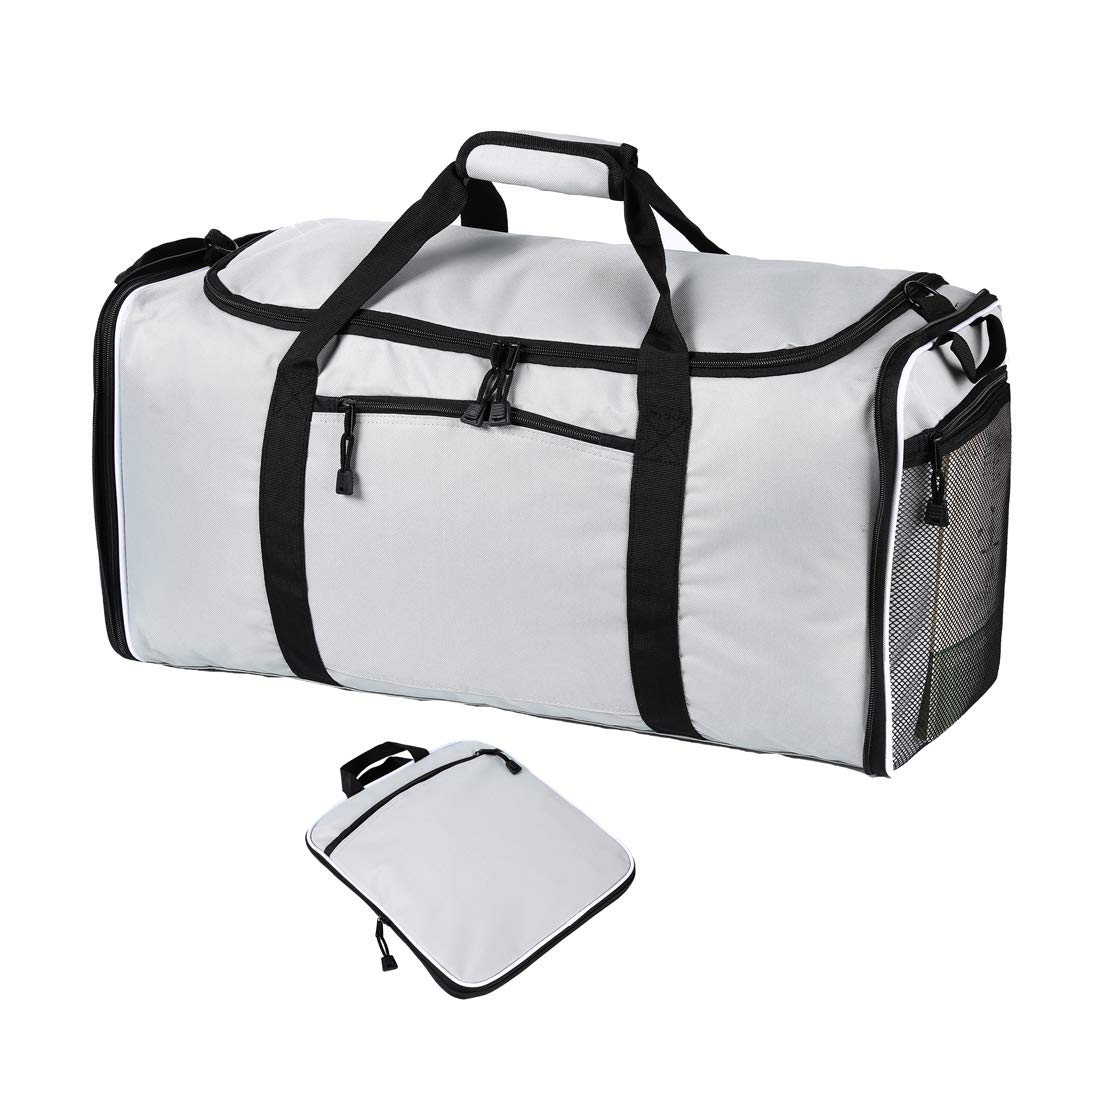 60L Packable Travel Duffle Bag Men Women Large Lightweight Luggage Duffel Bag Lucien Hanna LH-0024